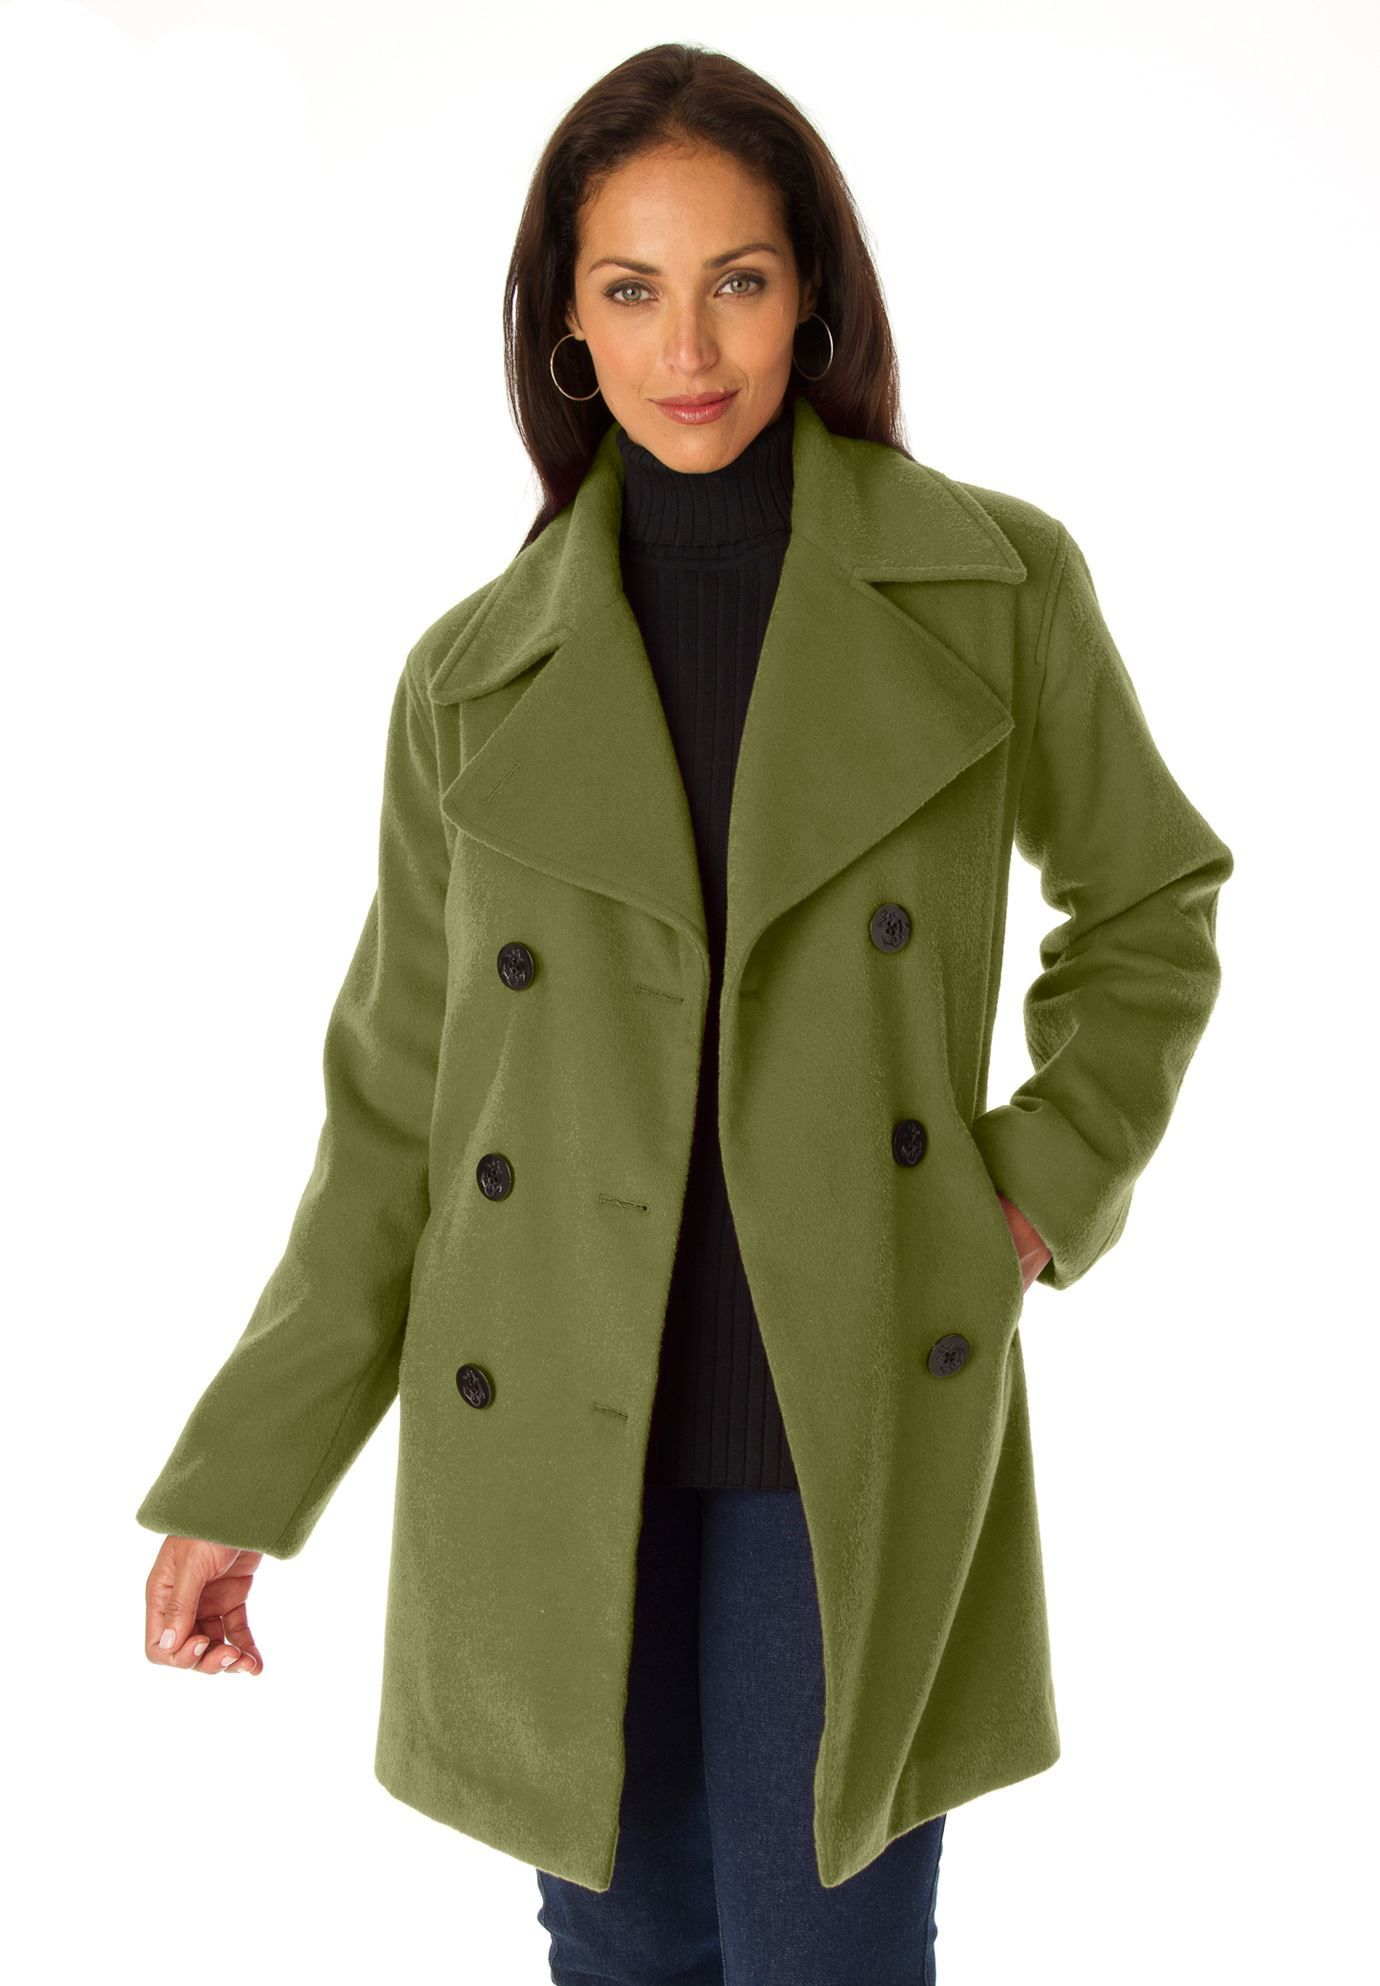 4a854f981a34 Our classic plus size peacoat from Jessica London® is the perfect ...